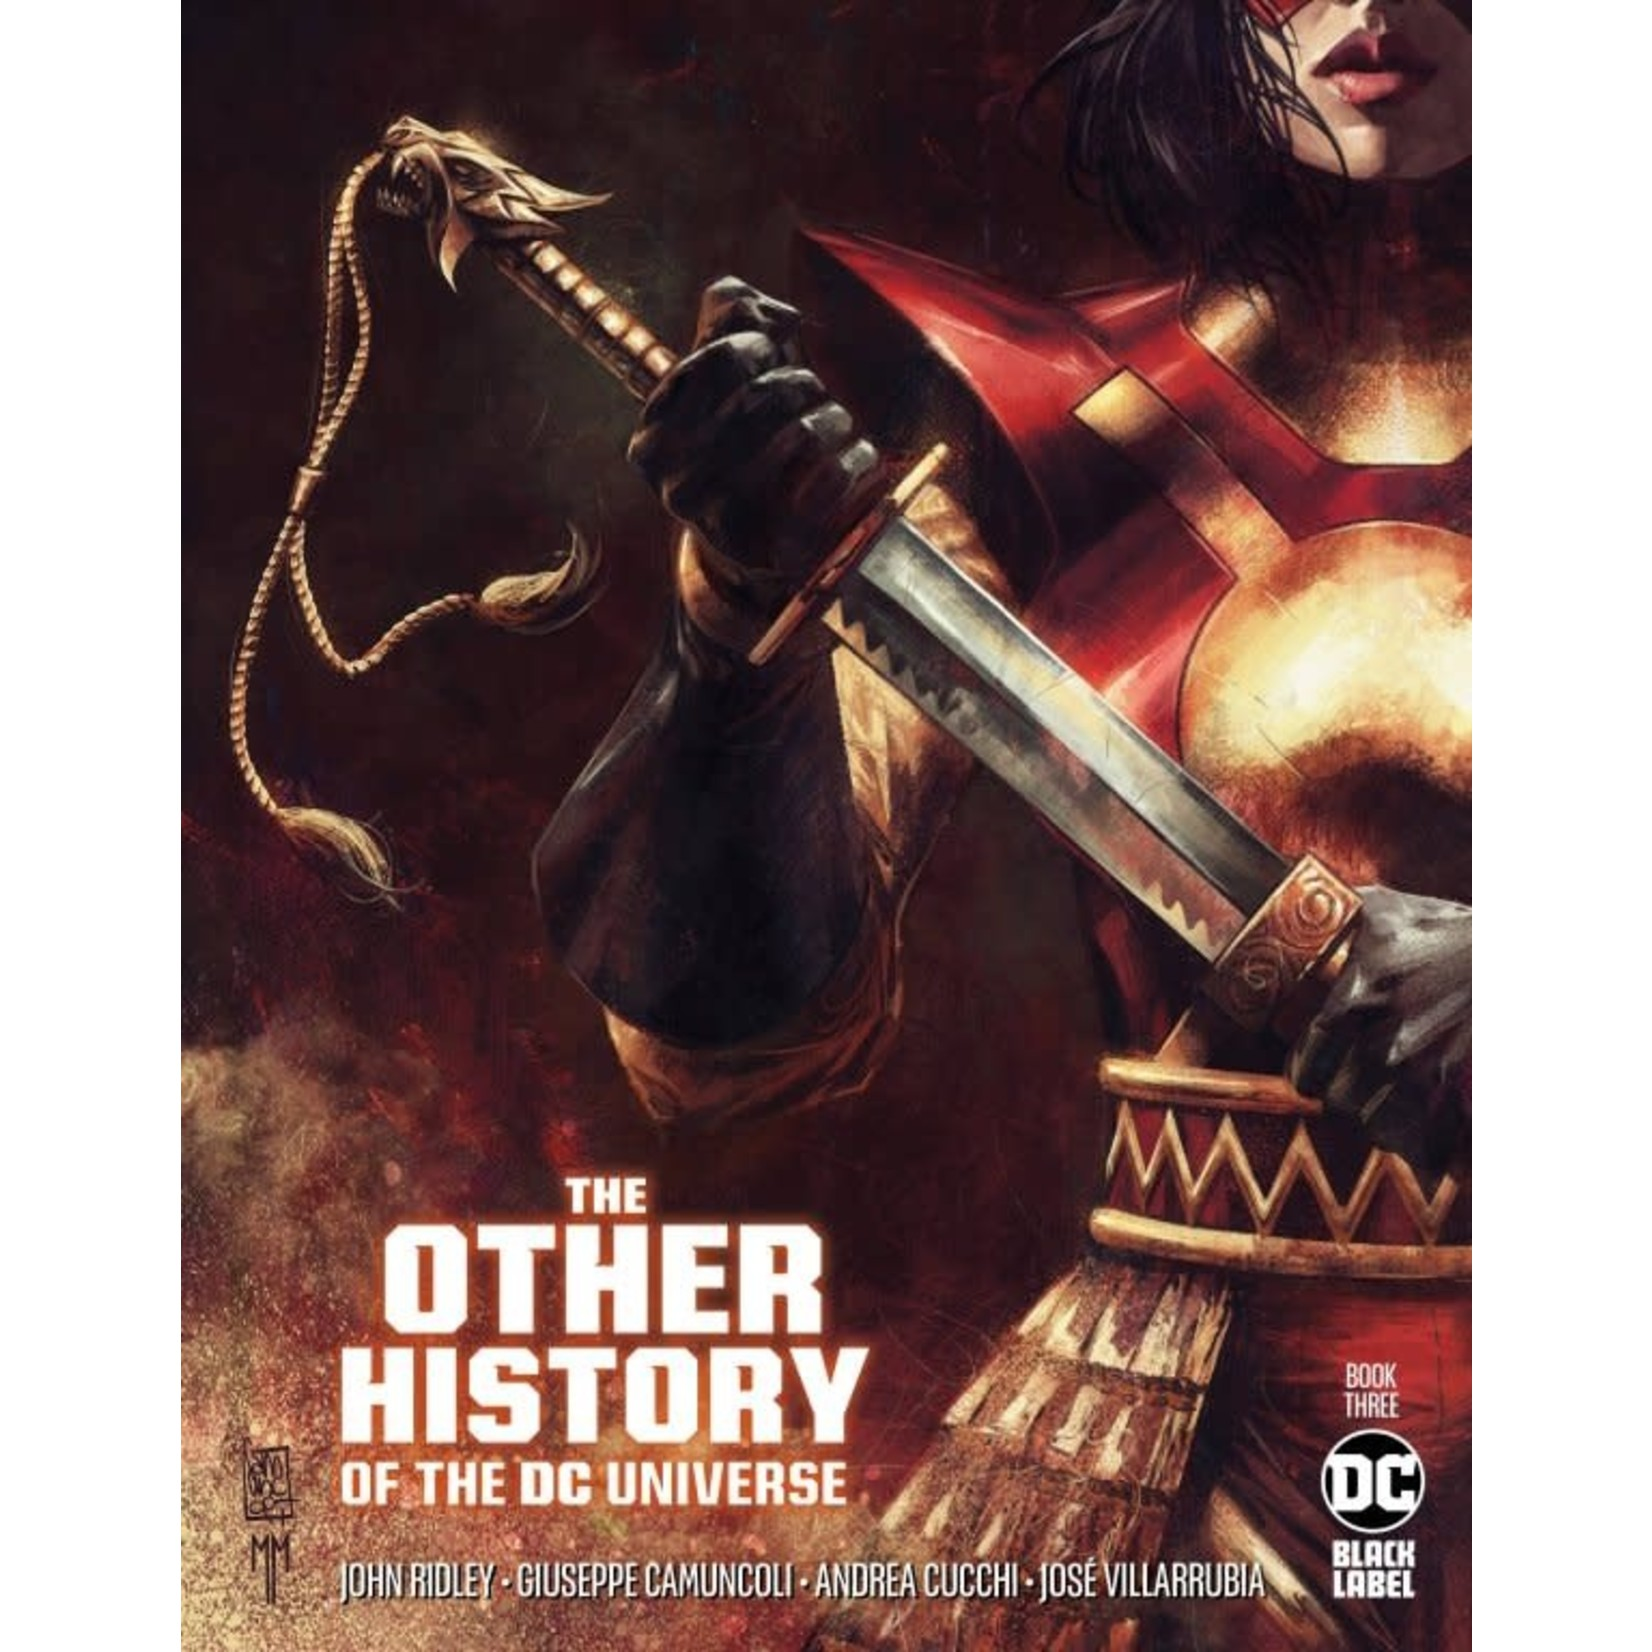 DC Comics The Other History Of The Dc Universe #3